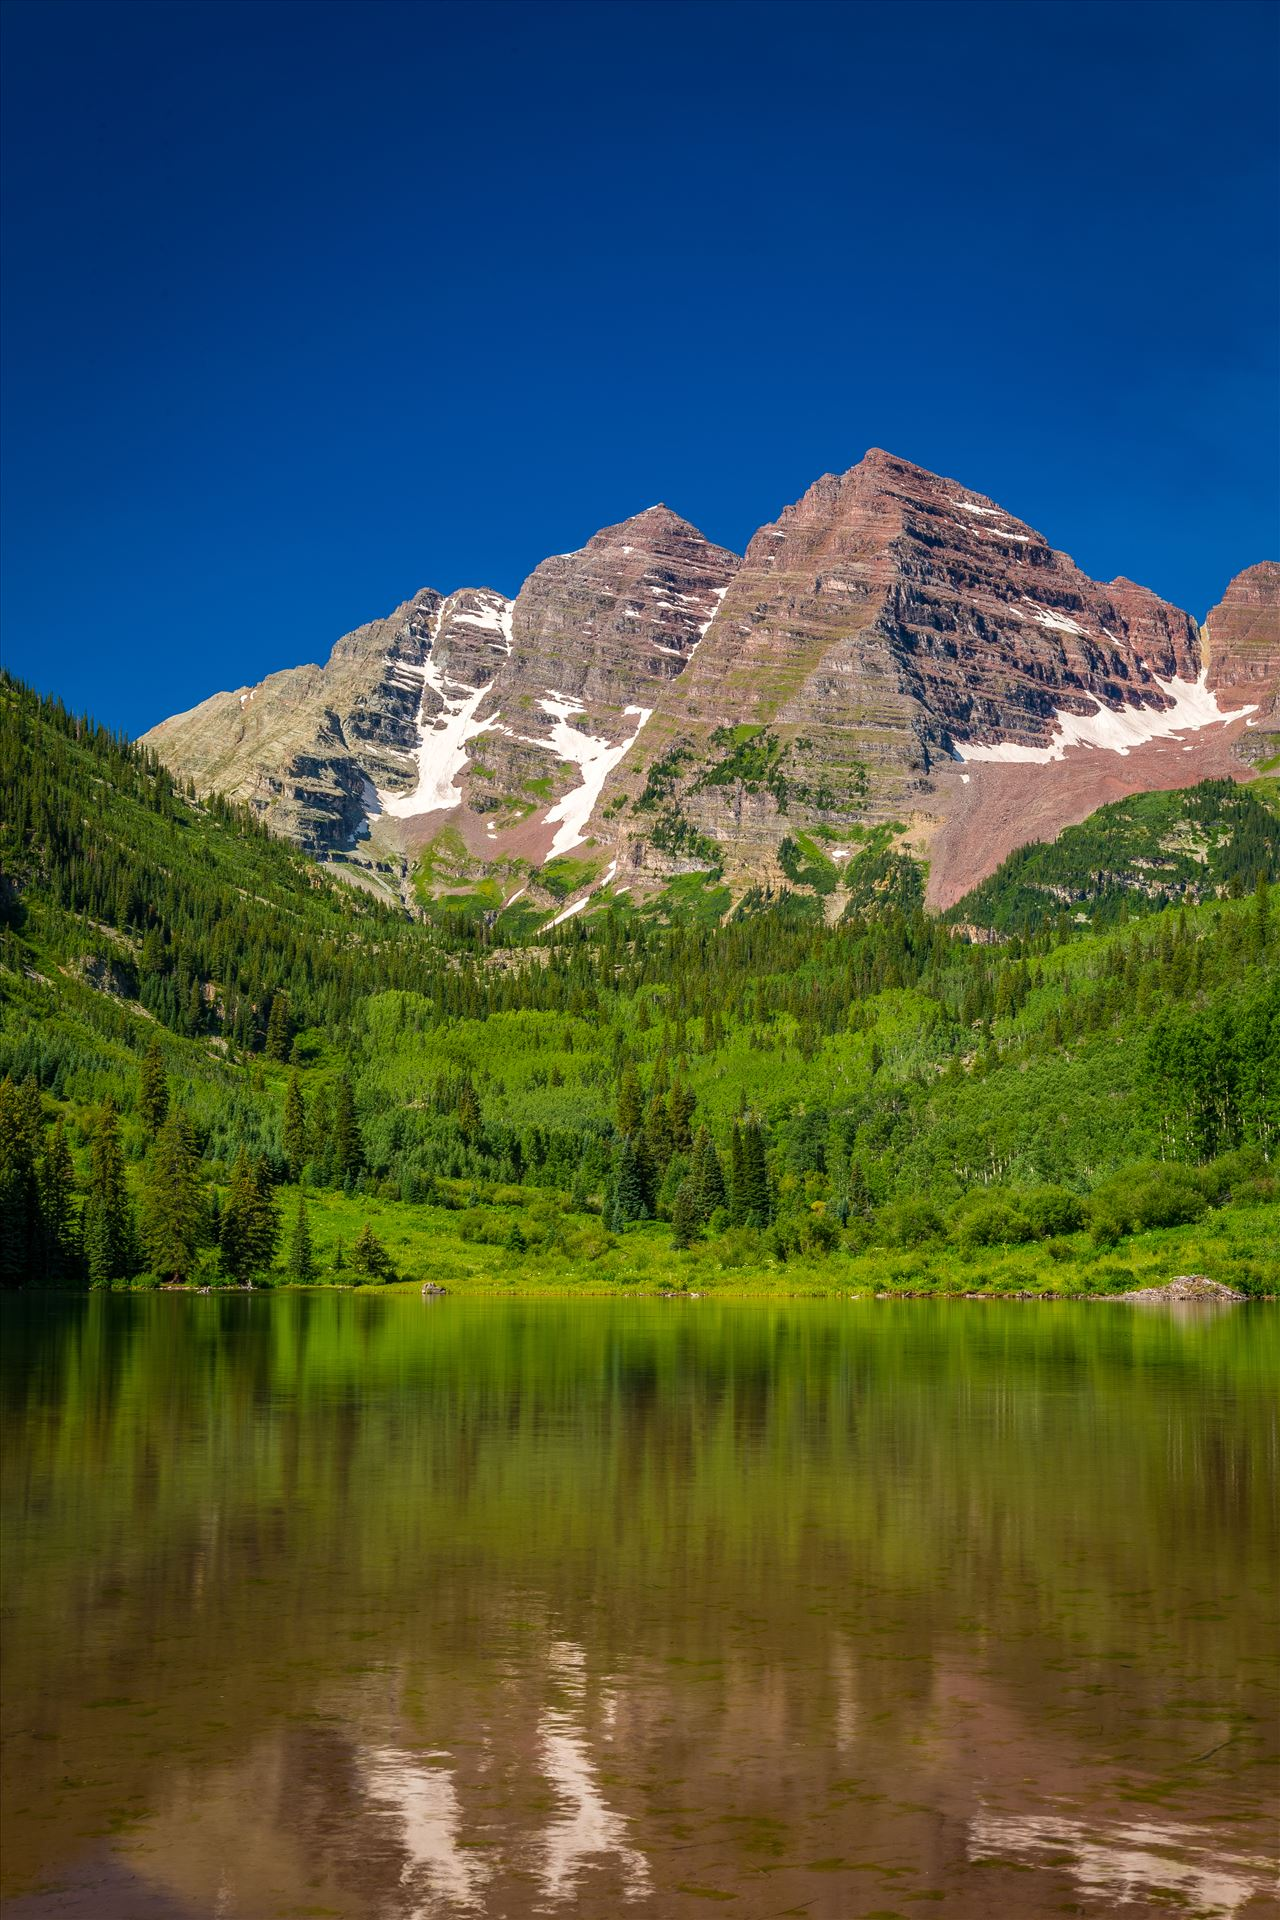 Maroon Bells in Summer No 07 - The remaining snow reflected in the water, at the Maroon Bells near Aspen, Colorado. by D Scott Smith